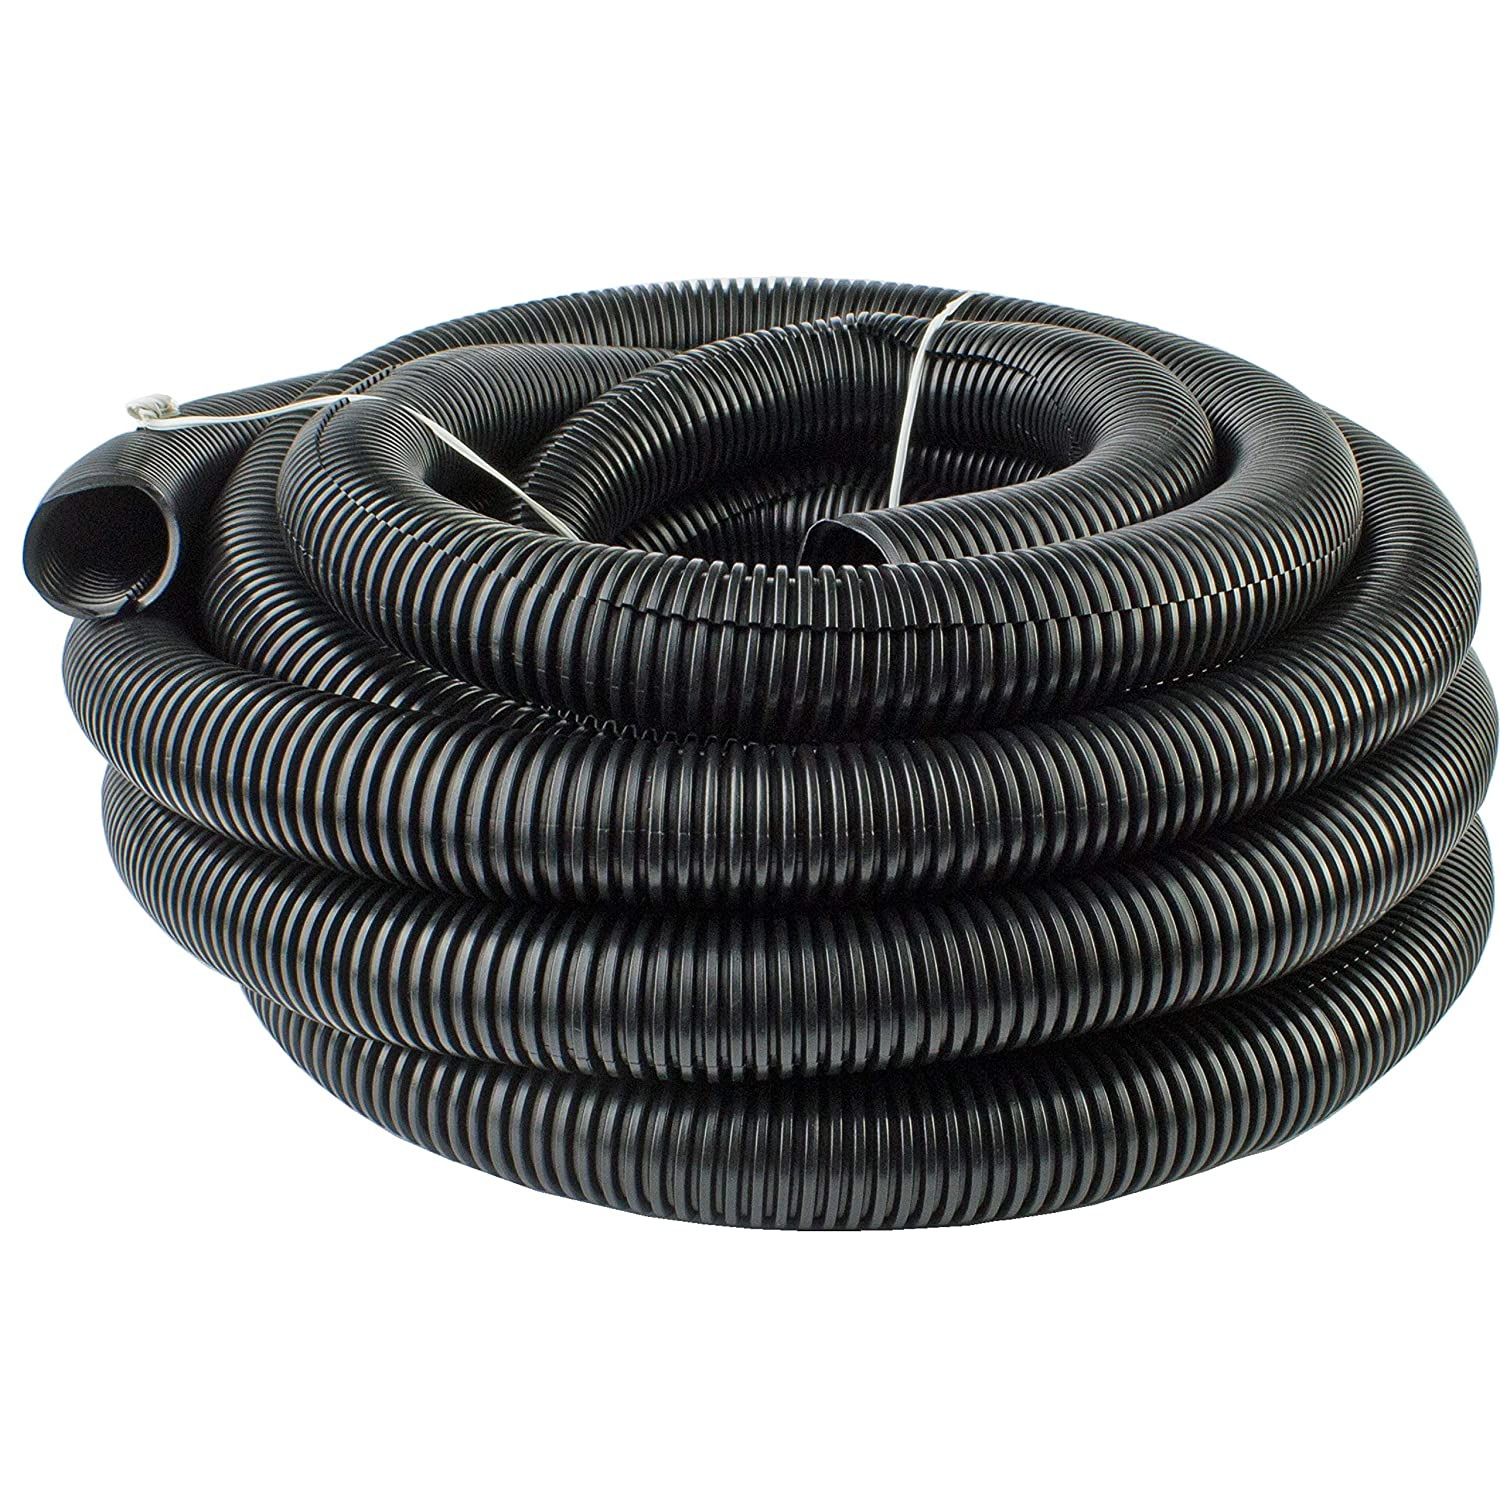 Braided conduit ips pipe fittings